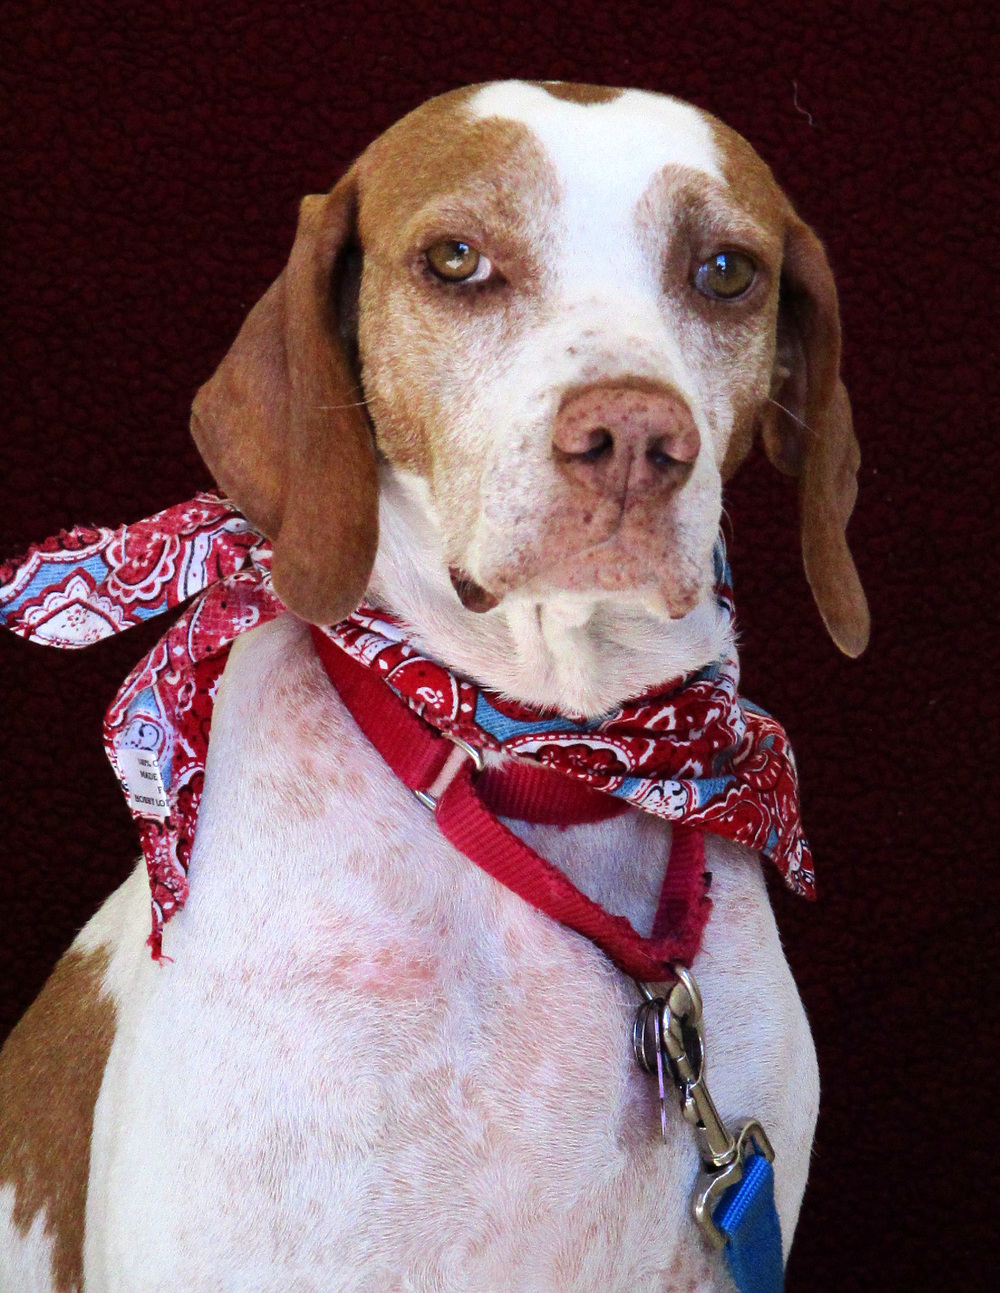 Stella is a sweet 2-year-old Pointer Mix. She is very timid and takes a little while to warm up to people so small children are not recommended. She would not do well in a home with a cat, but may be okay with a smaller, quiet dog. Stella is a sweet girl but likes her independence.